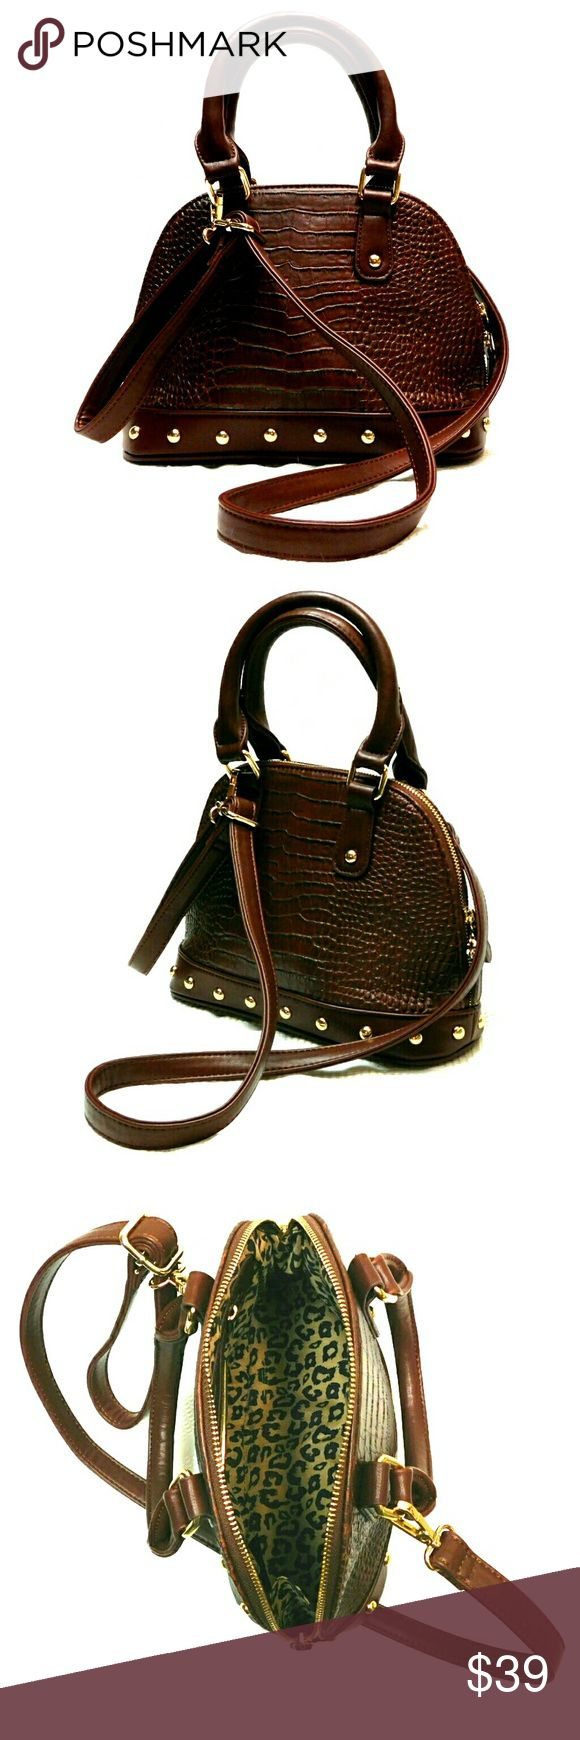 "💕NEW💕DREAM CONTROL BROWN CROC EMBSSD CROSSBODY 💕NEW💕 DREAM CONTROL BROWN CROC EMBOSSED CROSSBODY BAG Not Leather Brown Croc Embossed w/Gold Accents. 2 Side Handles (Drop 4""), Adjustable Crossbody Strap Zippered Dome Shape Opening w/Leopard  Lining  Interior Zip Pouch w/Gold Signature Plate Gold Accents on Interior Approx Meas;    L   12    H   8""    W   4 1/2""    Strap Drop   17"" Please See All Pics. Ask ? If Not Sure DREAM CONTROL Bags Crossbody Bags"